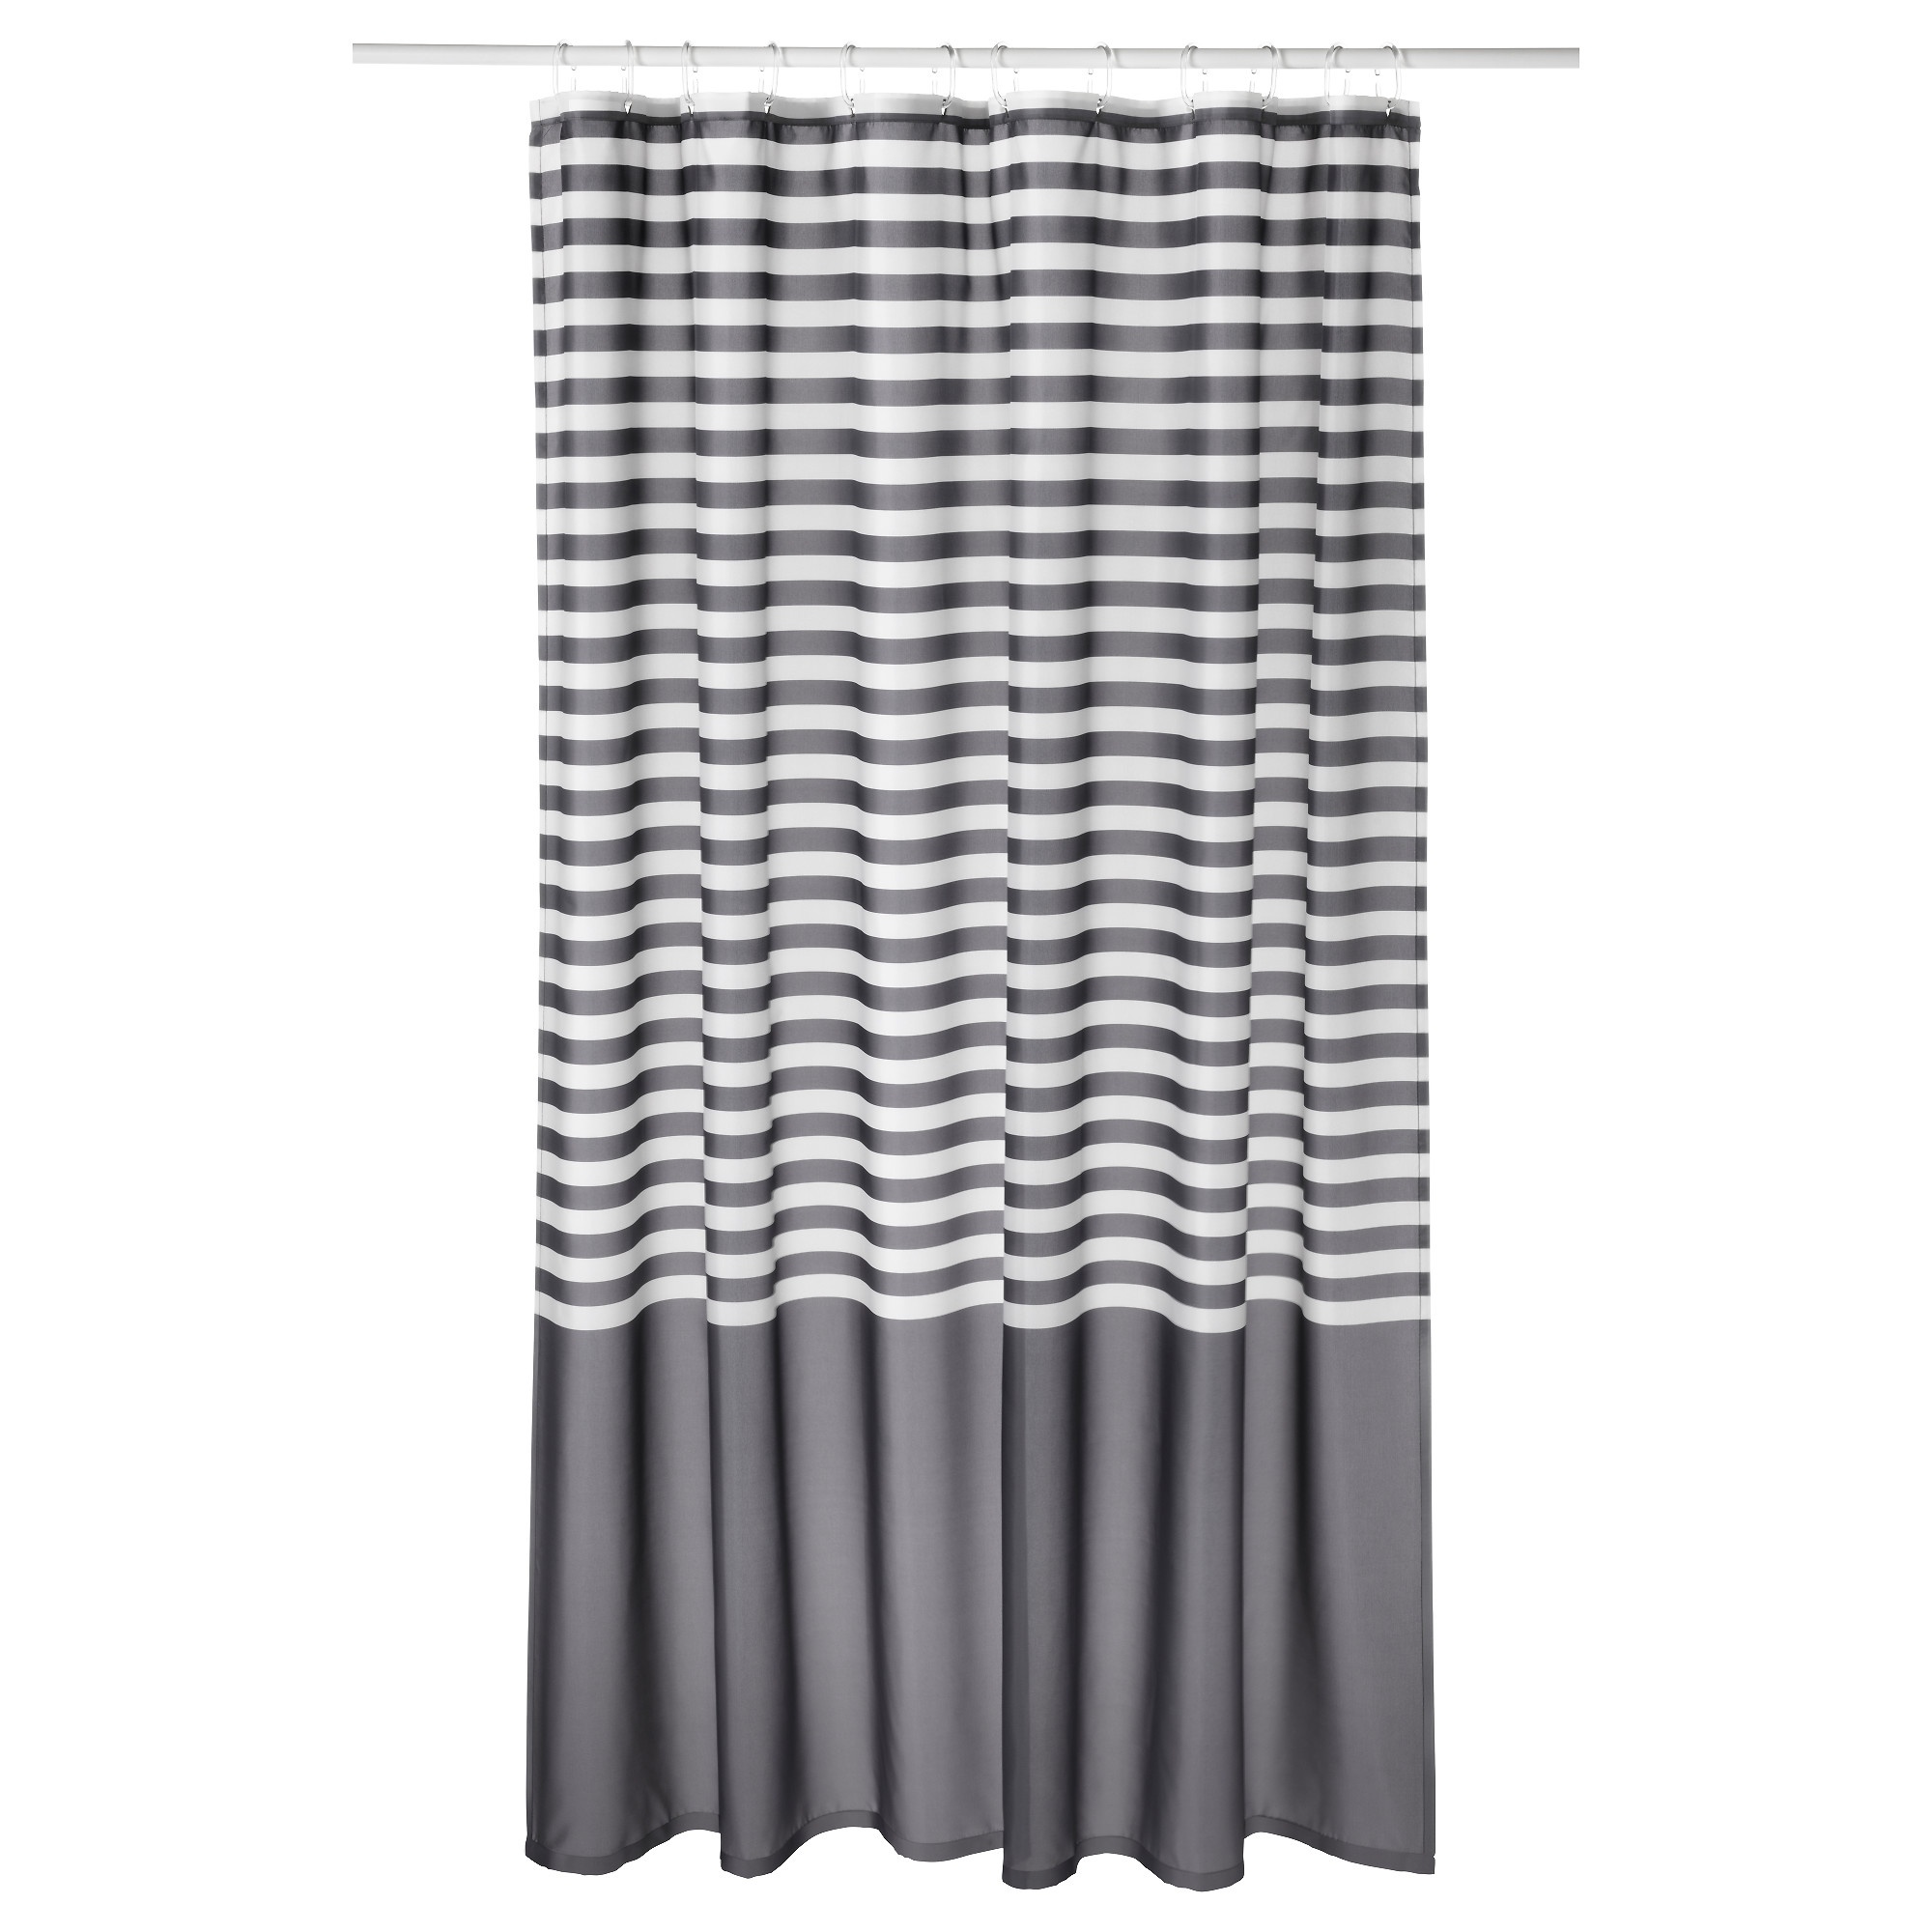 Ikea Shower Curtain | Oversized Shower Curtain | Ikea Curtain Rod